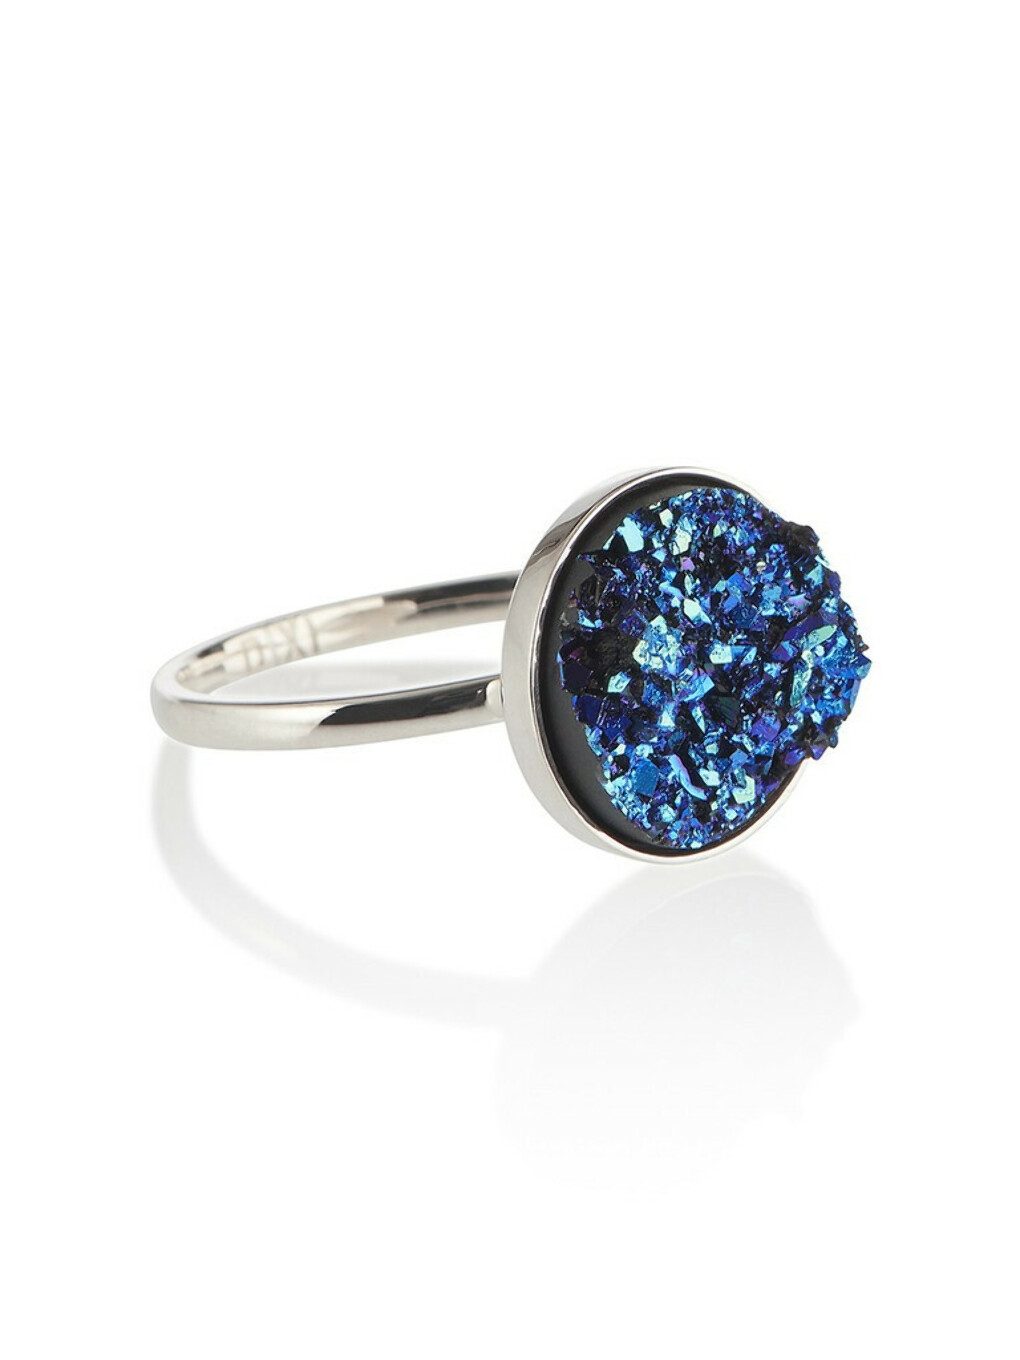 Sterling Silver Midnight Dreamer Druzy Ring